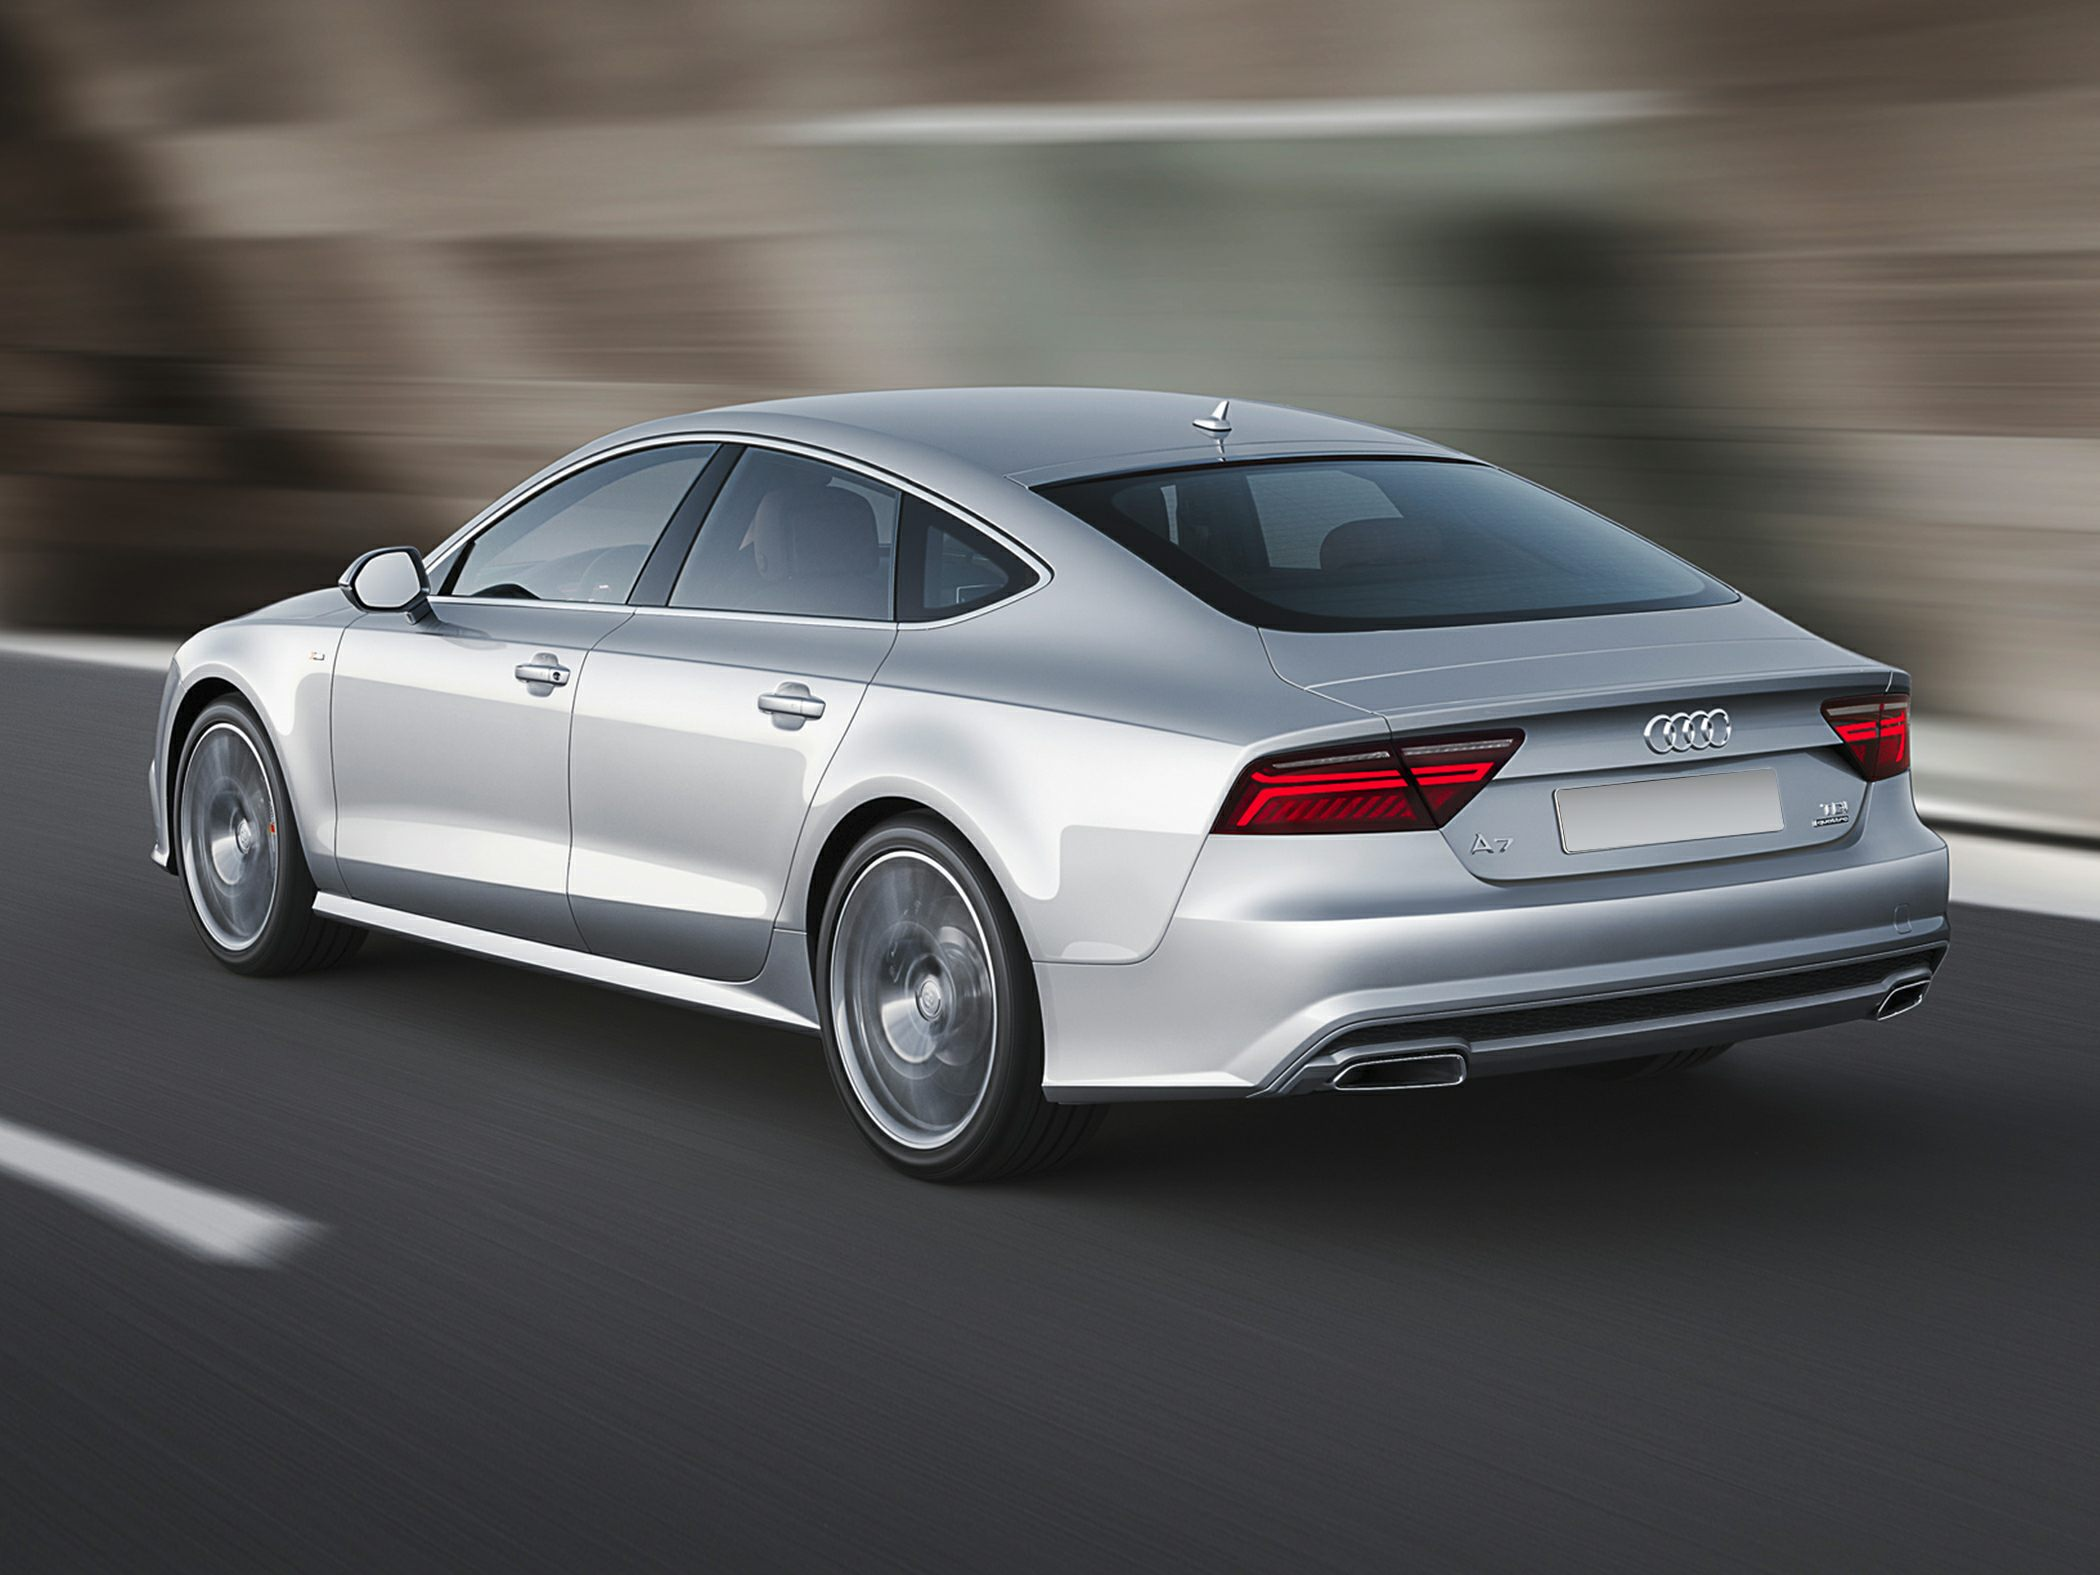 2017 Audi A7 Deals Prices Incentives  Leases Overview  CarsDirect